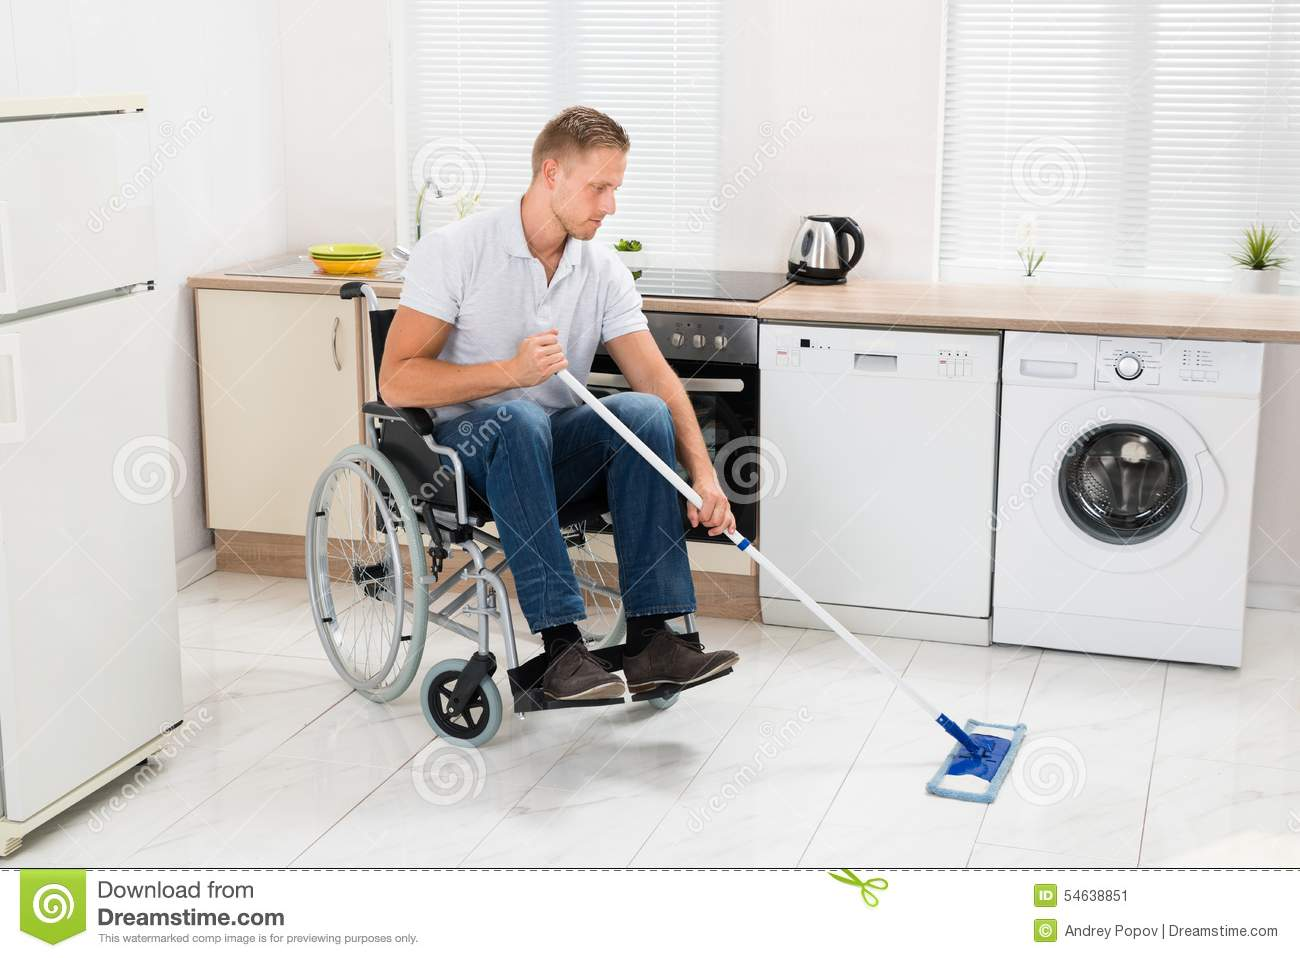 Kitchen Floor Mop Disabled Man On Wheelchair Cleaning Floor Stock Photo Image